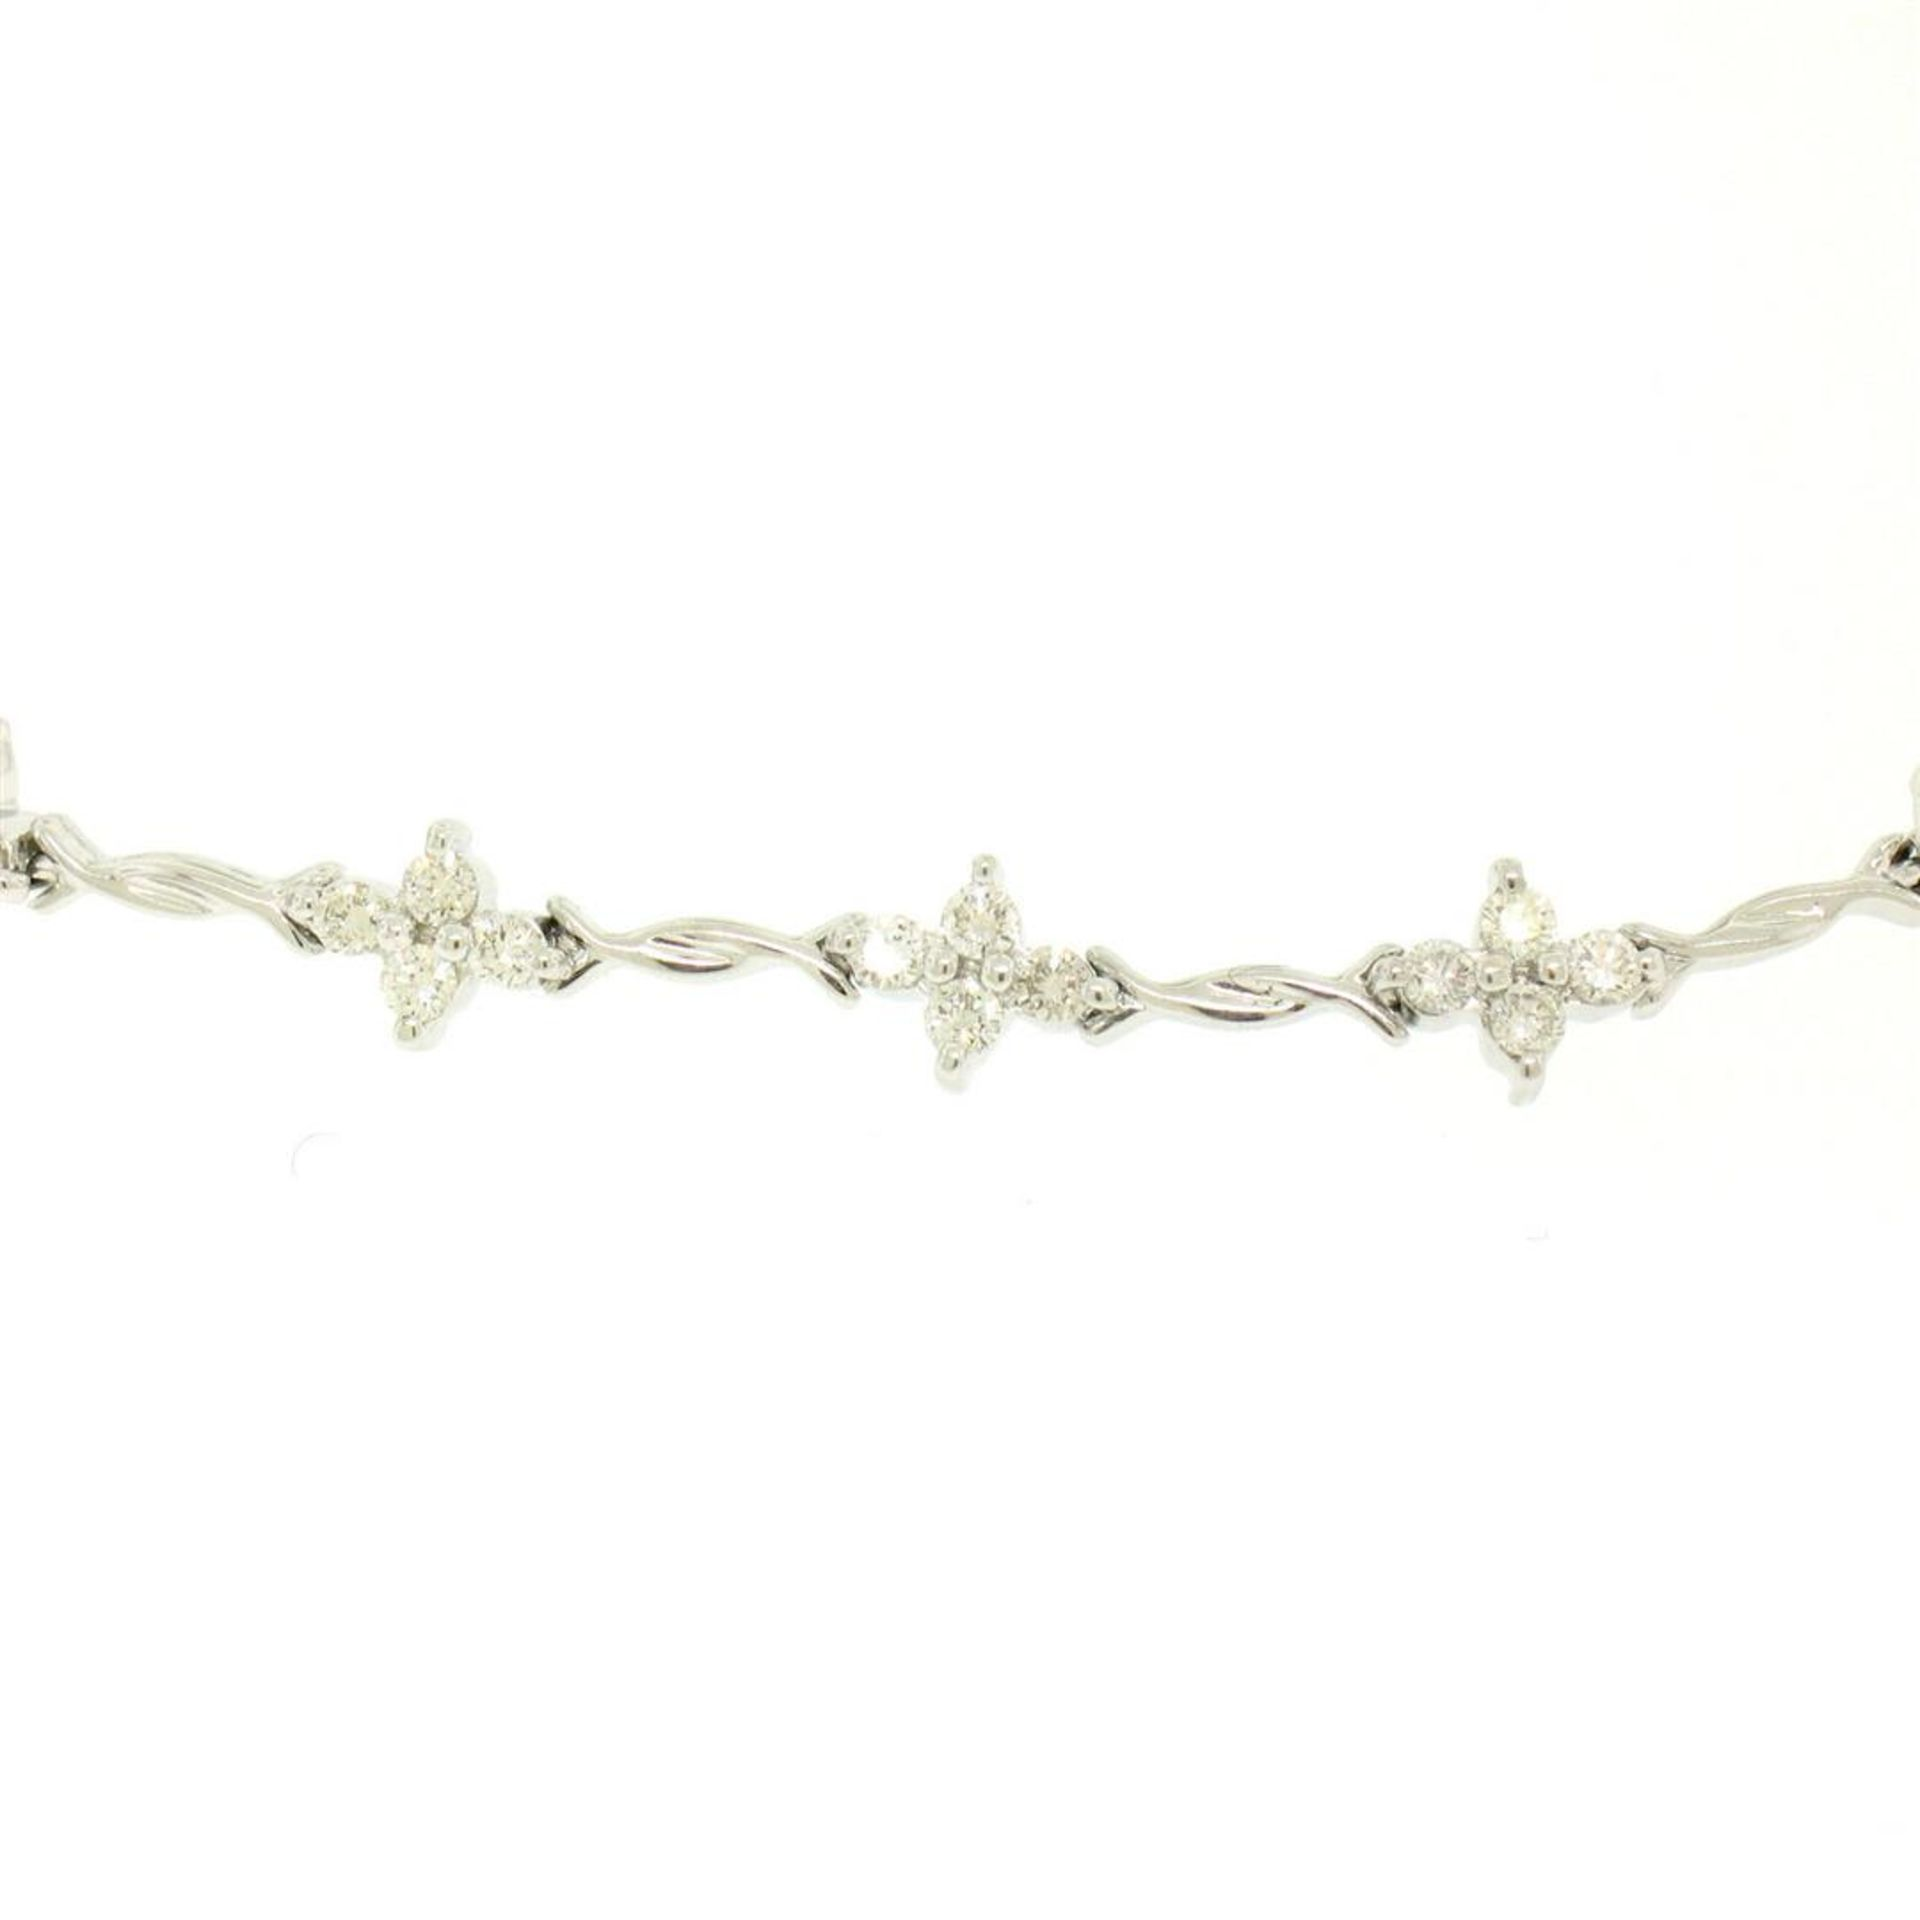 18K White Gold 1.65ctw Diamond Flower Cluster Twisted Wire Link Tennis Bracelet - Image 2 of 6